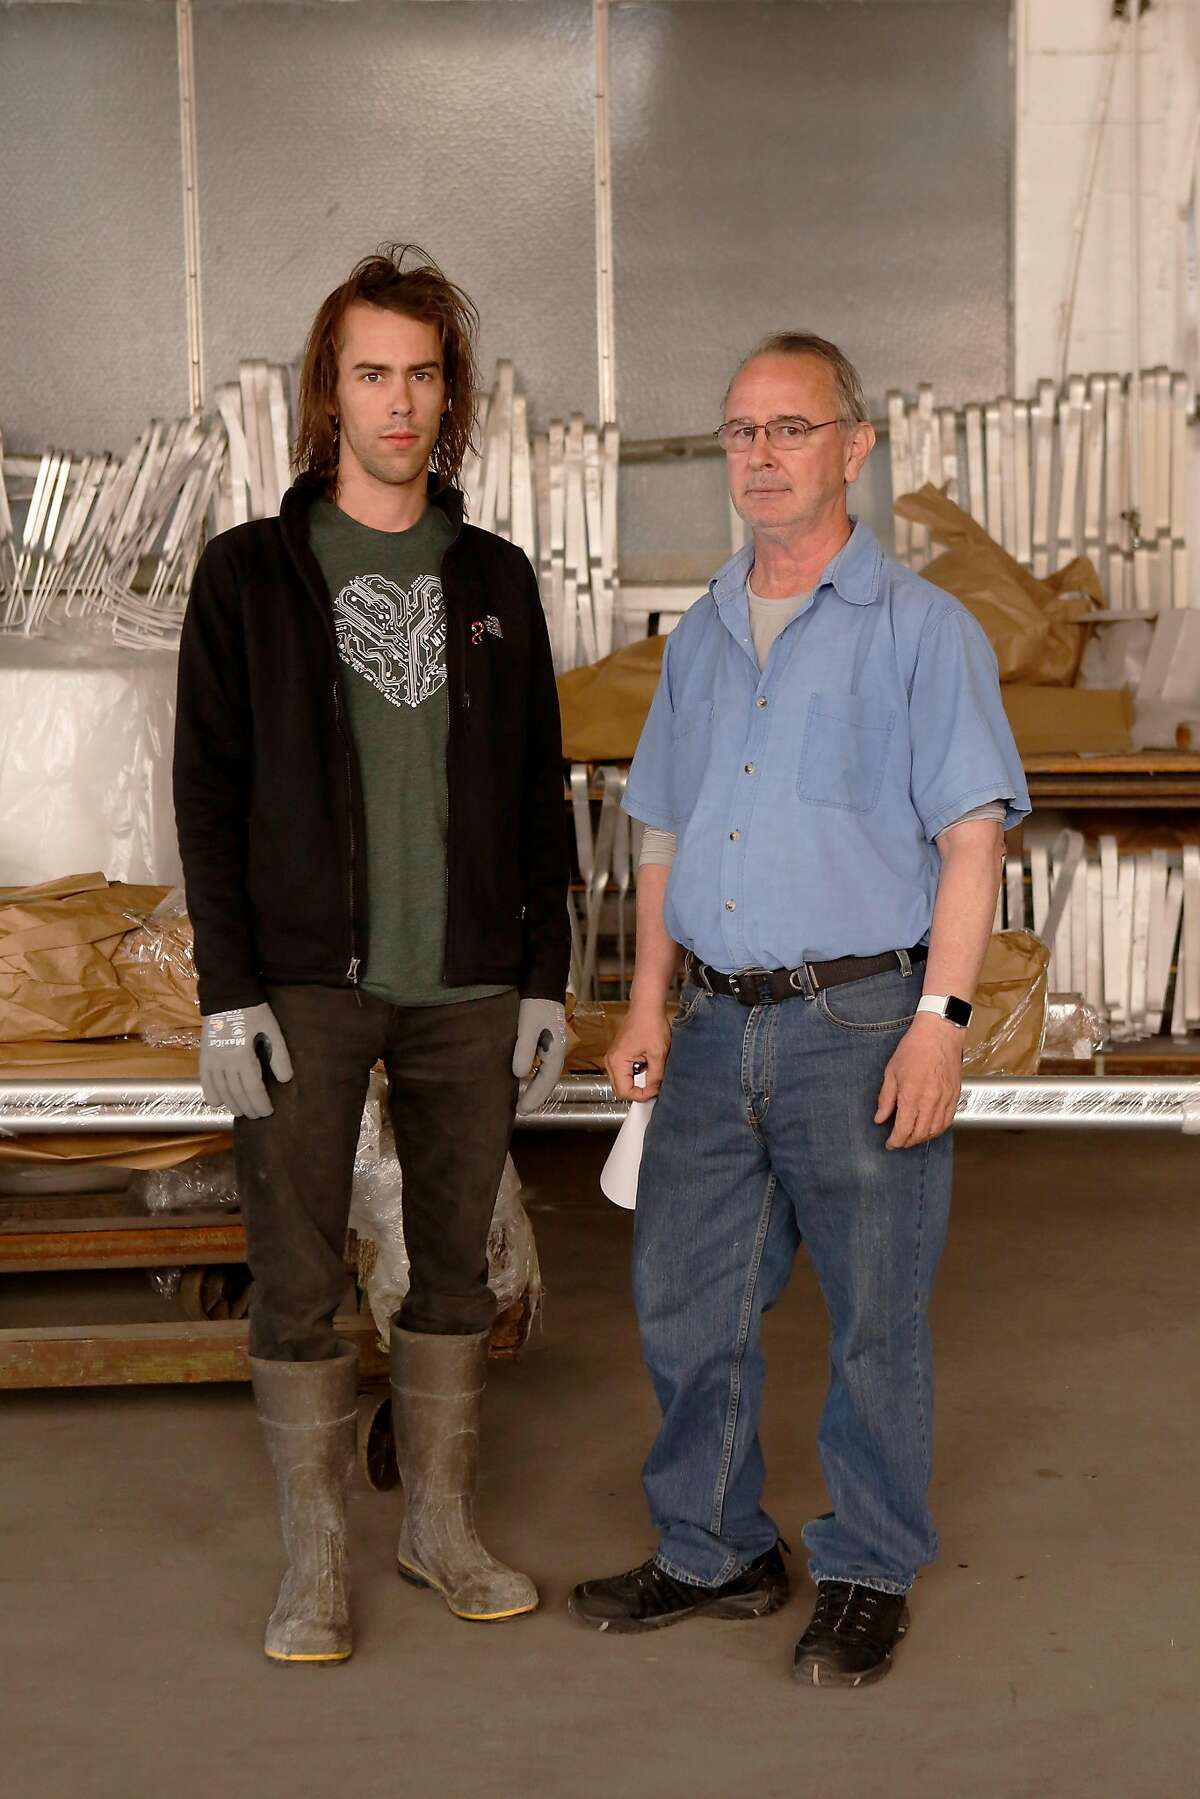 Bill Beard, left, the CEO of Metalco since 2013, works with son Jesse Beard in their shop on Thursday, June 14, 2018 in Emeryville, Calif. Metalco is a small, 70-year-old family-run business which is allegedly being evicted by Berkeley Bowl.